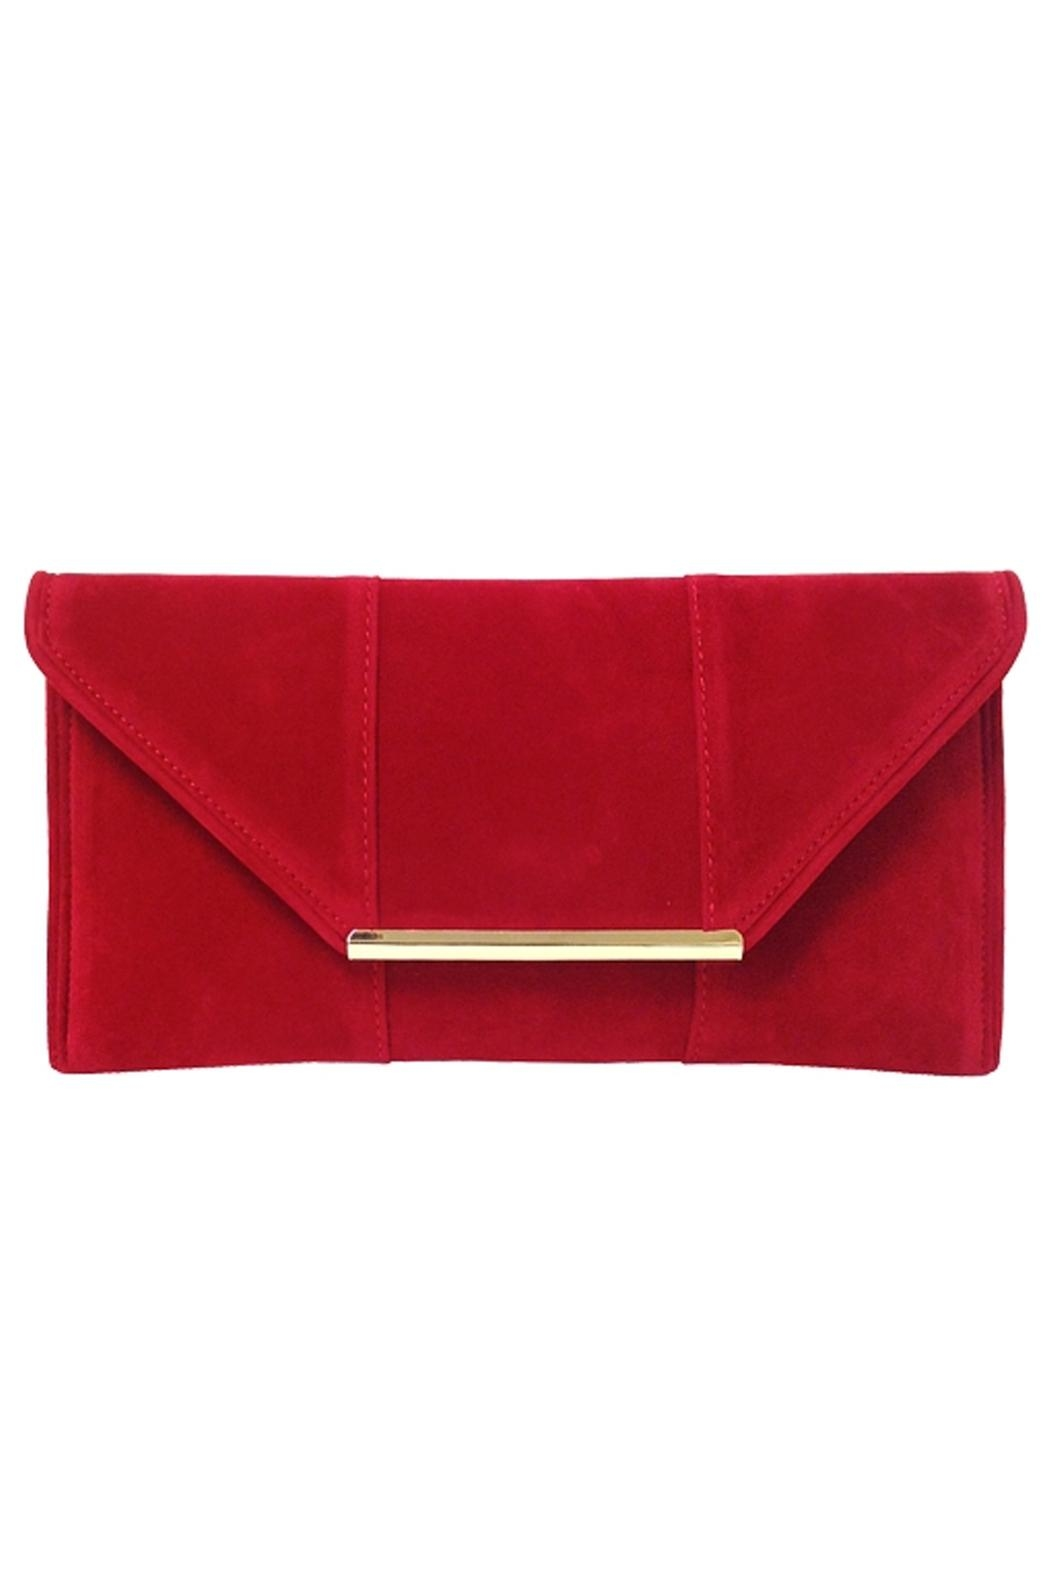 Wild Lilies Jewelry  Red Velvet Clutch - Main Image